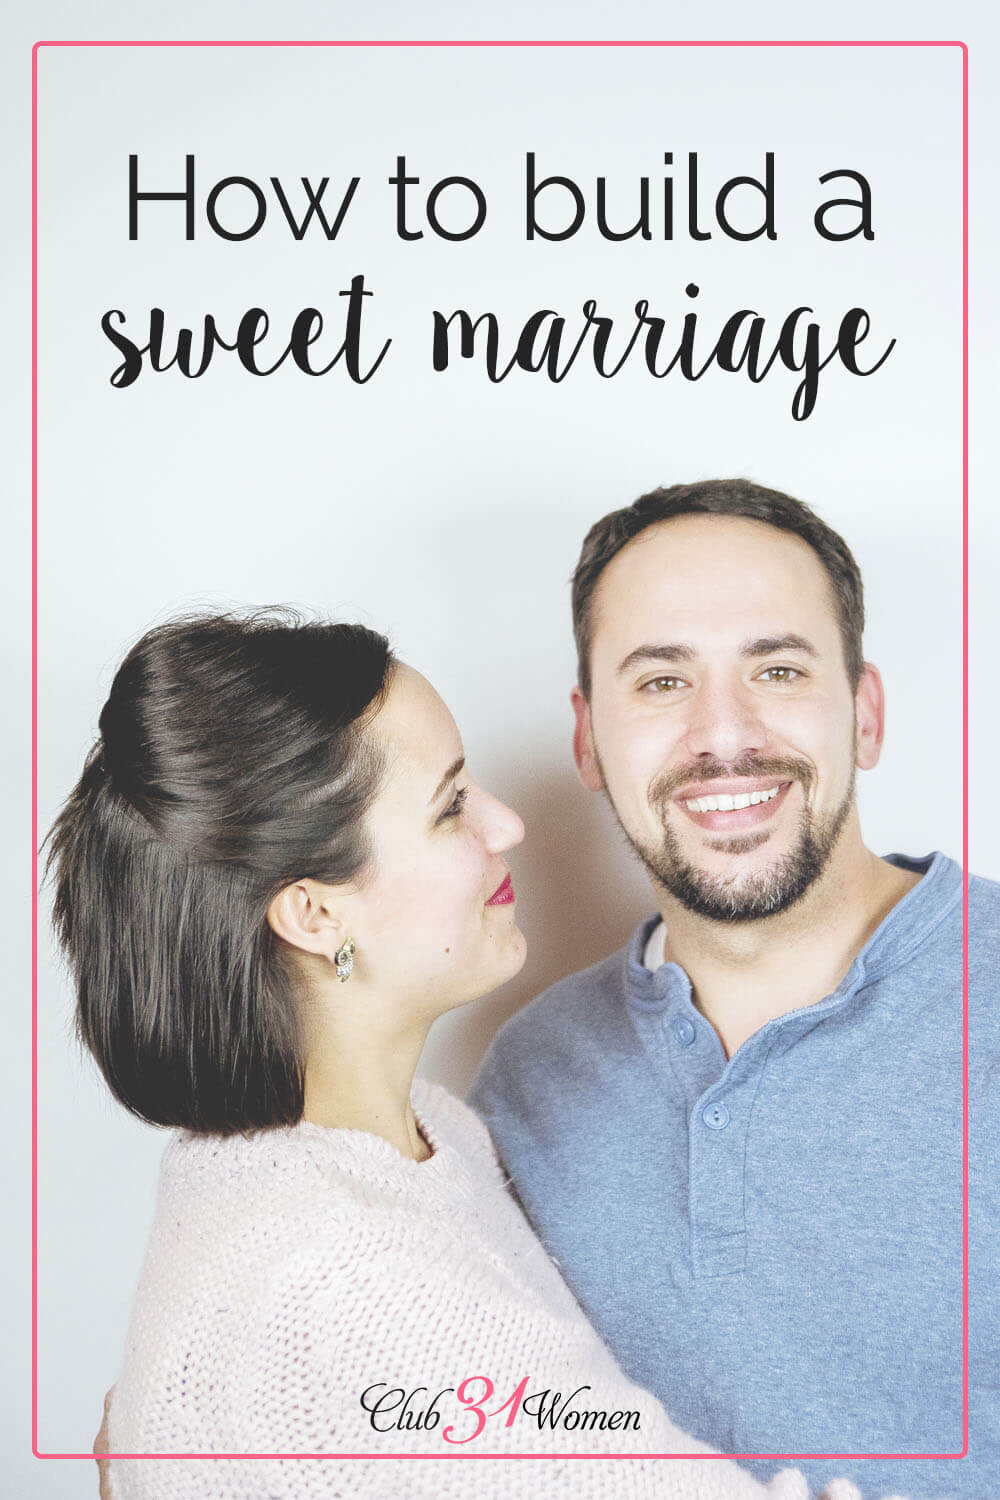 Would you like to build a sweet marriage? No matter where your relationship is at, here is a simple, but powerful way you can start right now! via @Club31Women